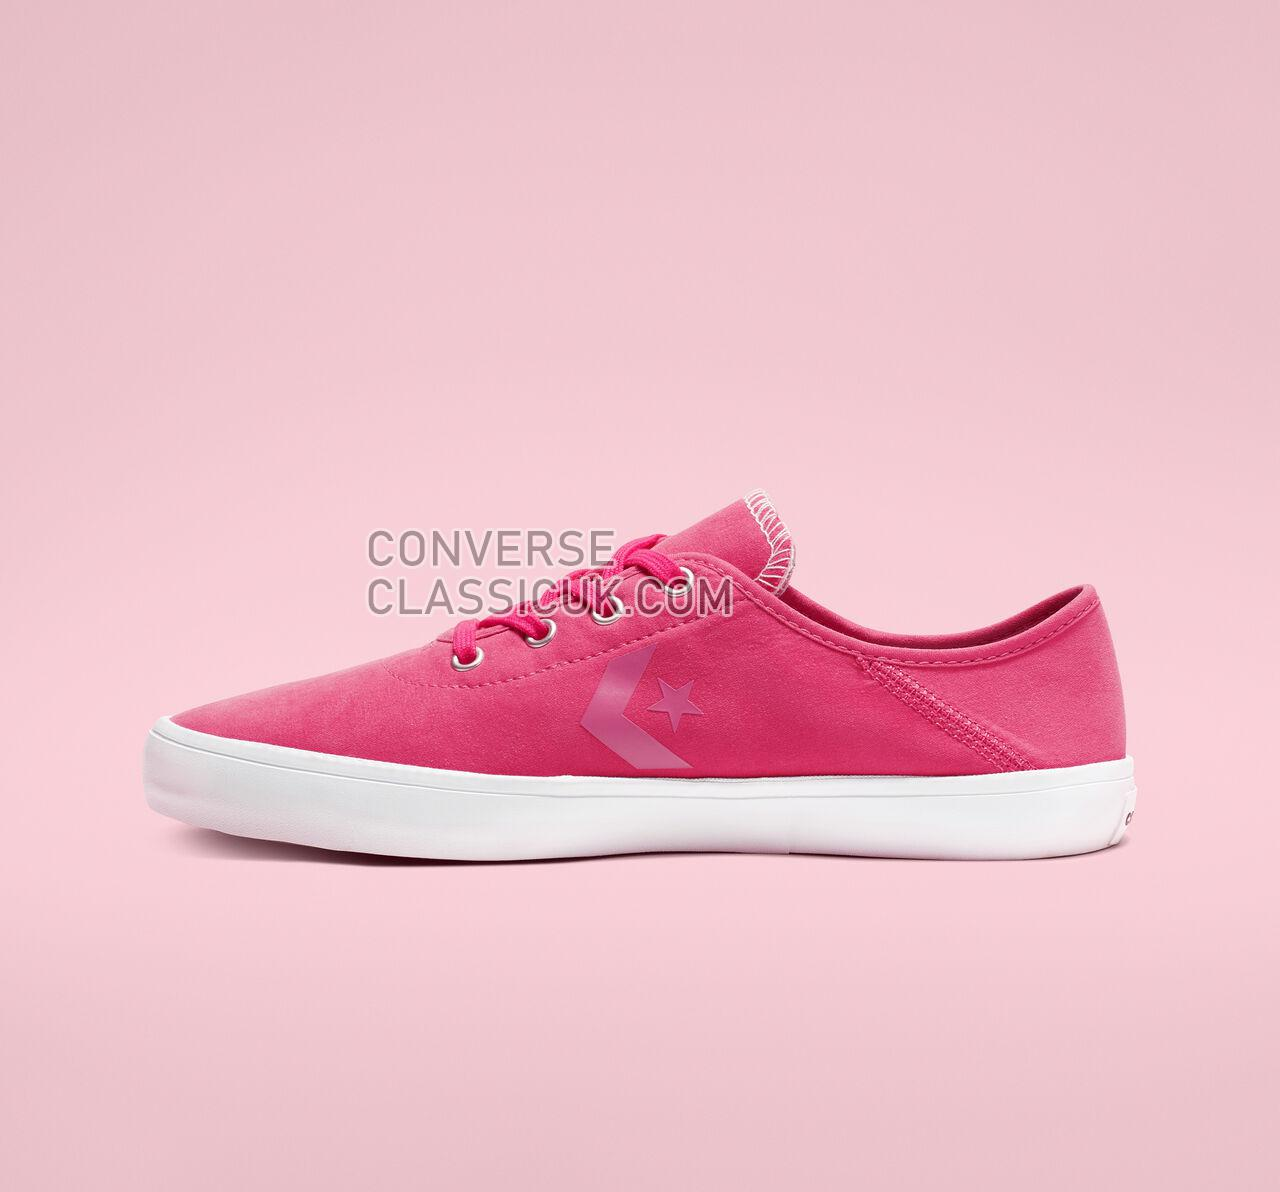 Converse Costa Collapsible Heel Low Top Womens 564377F Strawberry Jam/Strawberry Jam Shoes